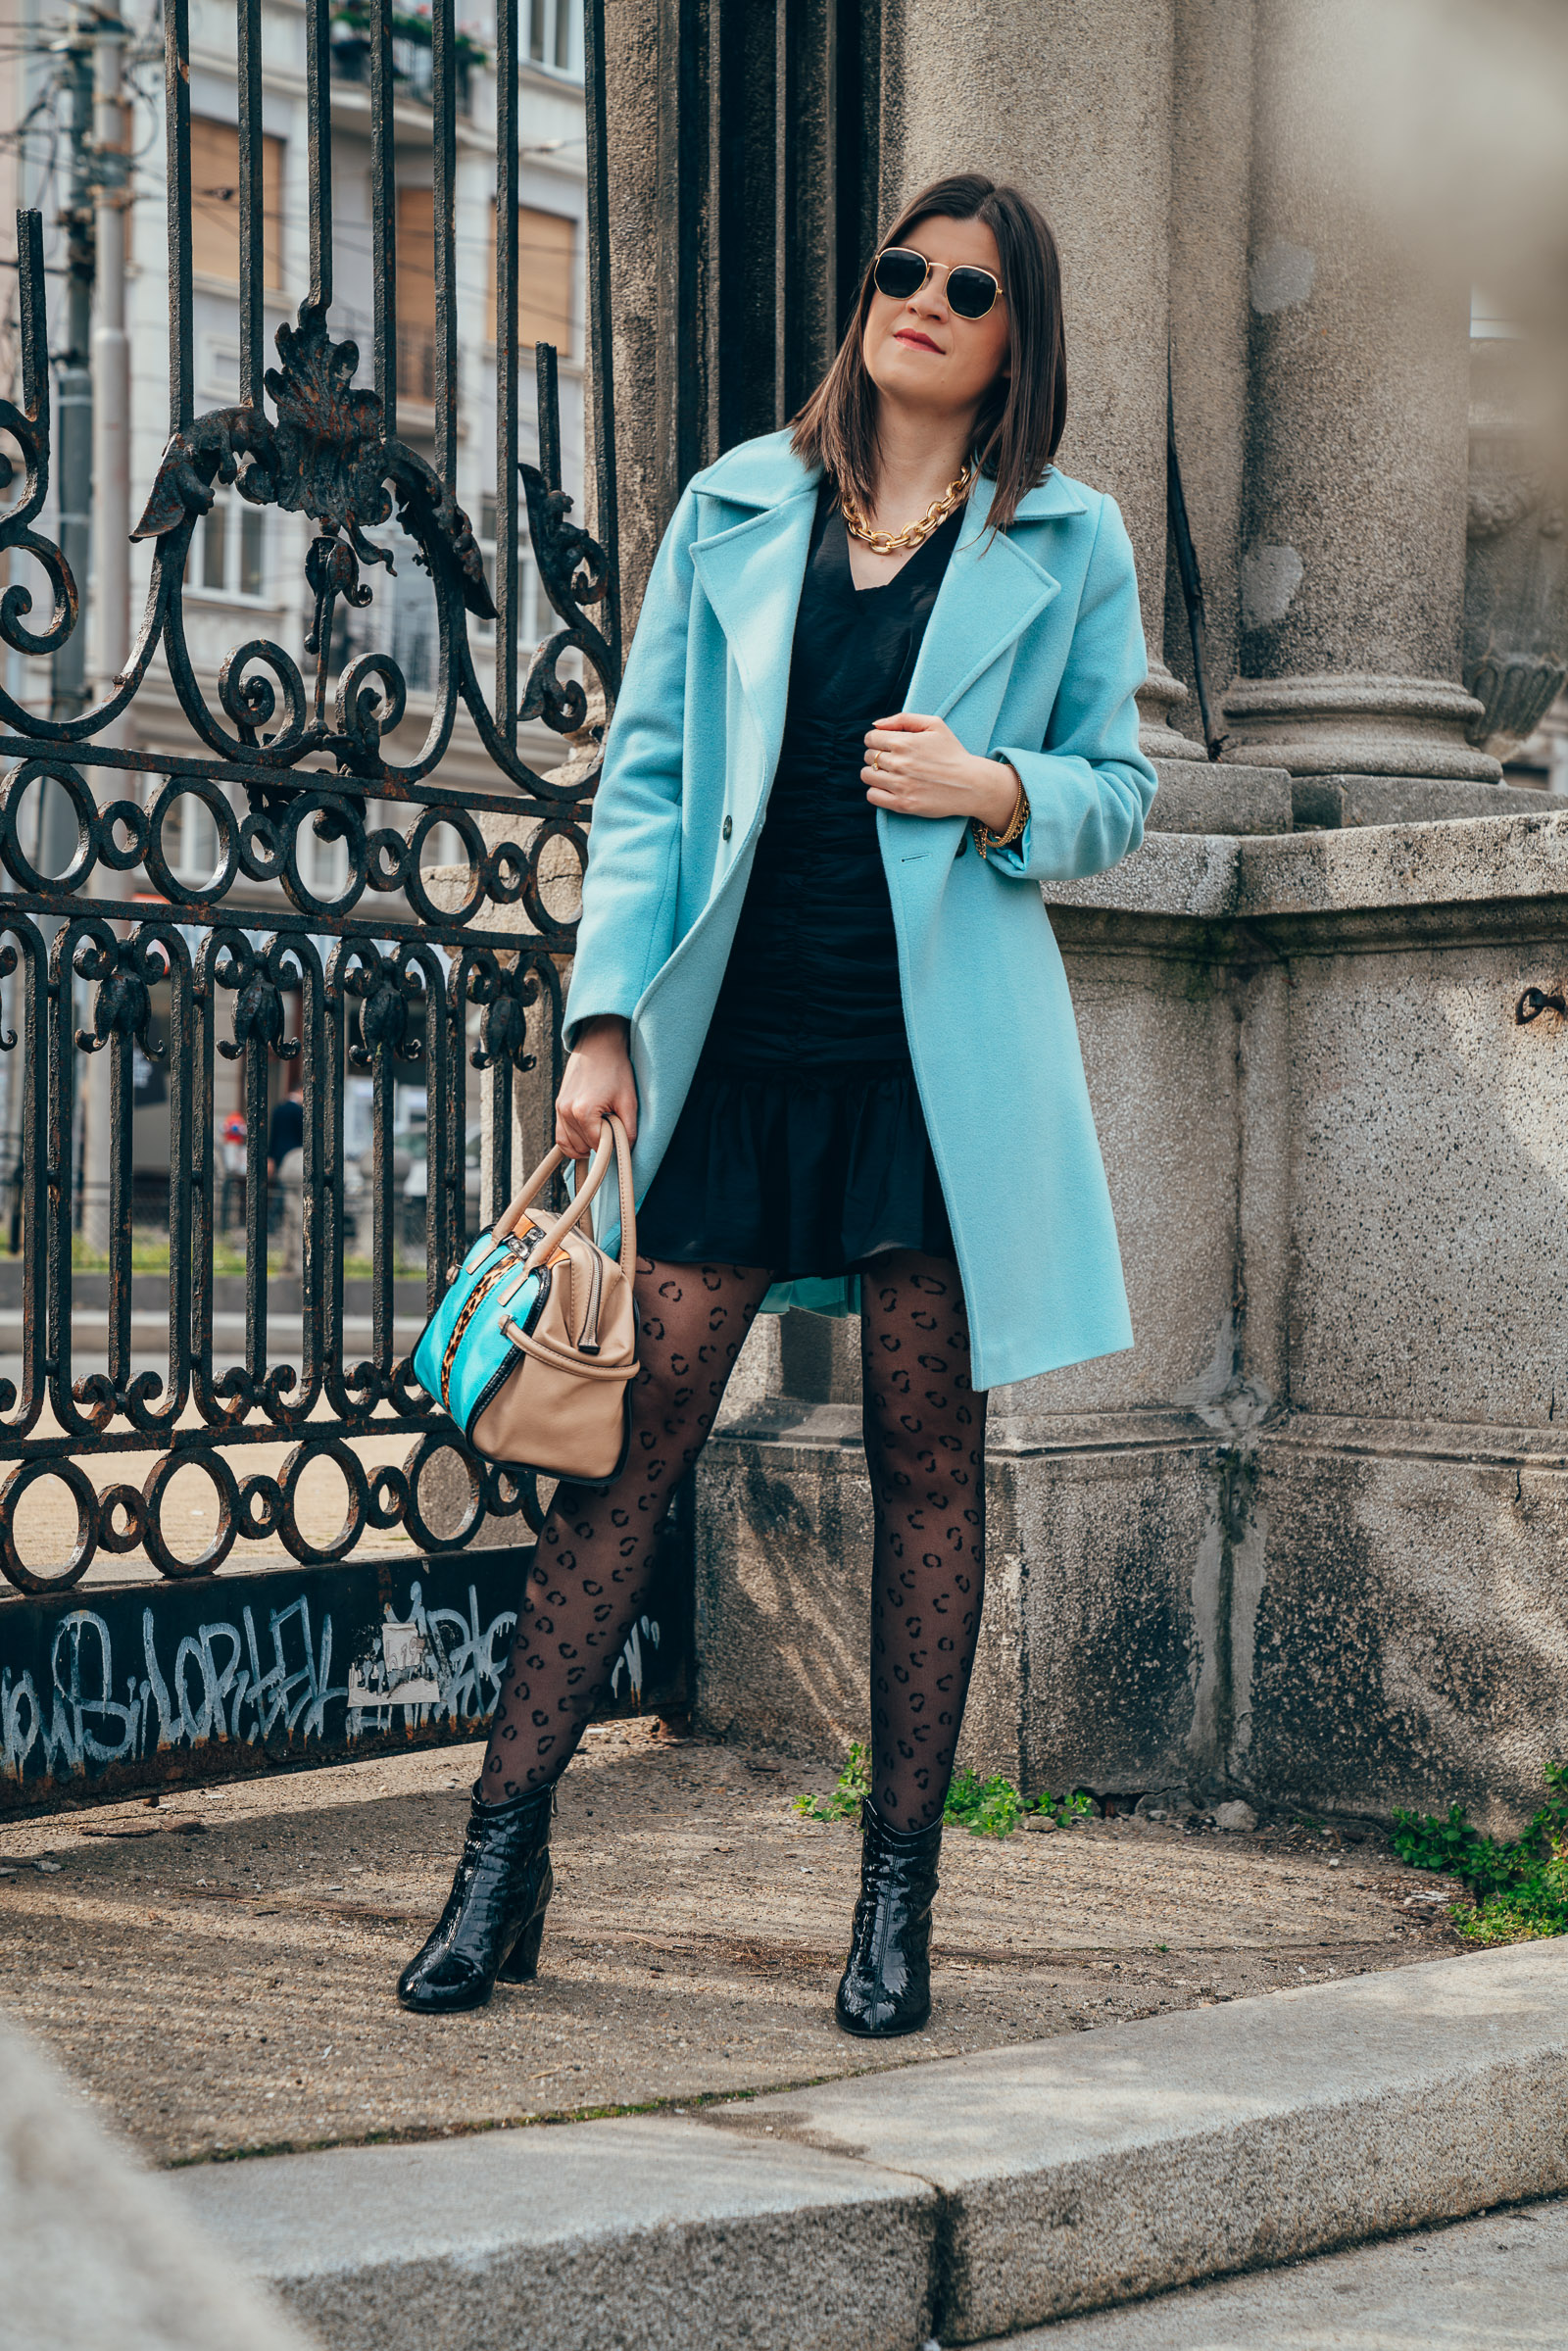 Early Spring Edition w/ Fashion Tights